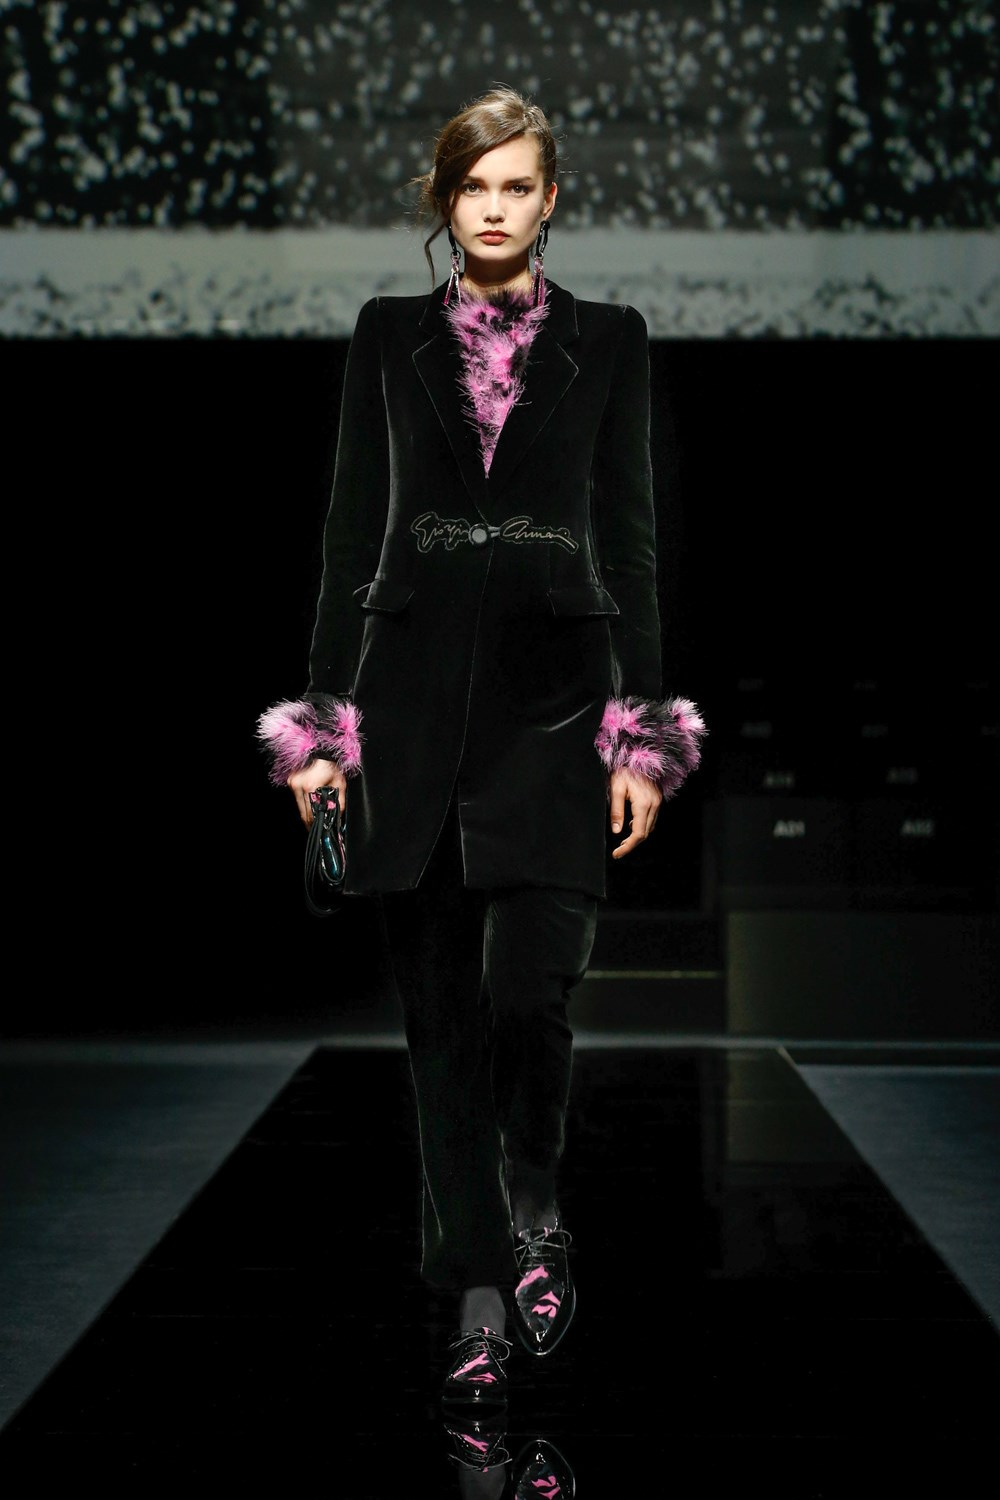 Giorgio Armani Fall 2020 Fashion Show Photos